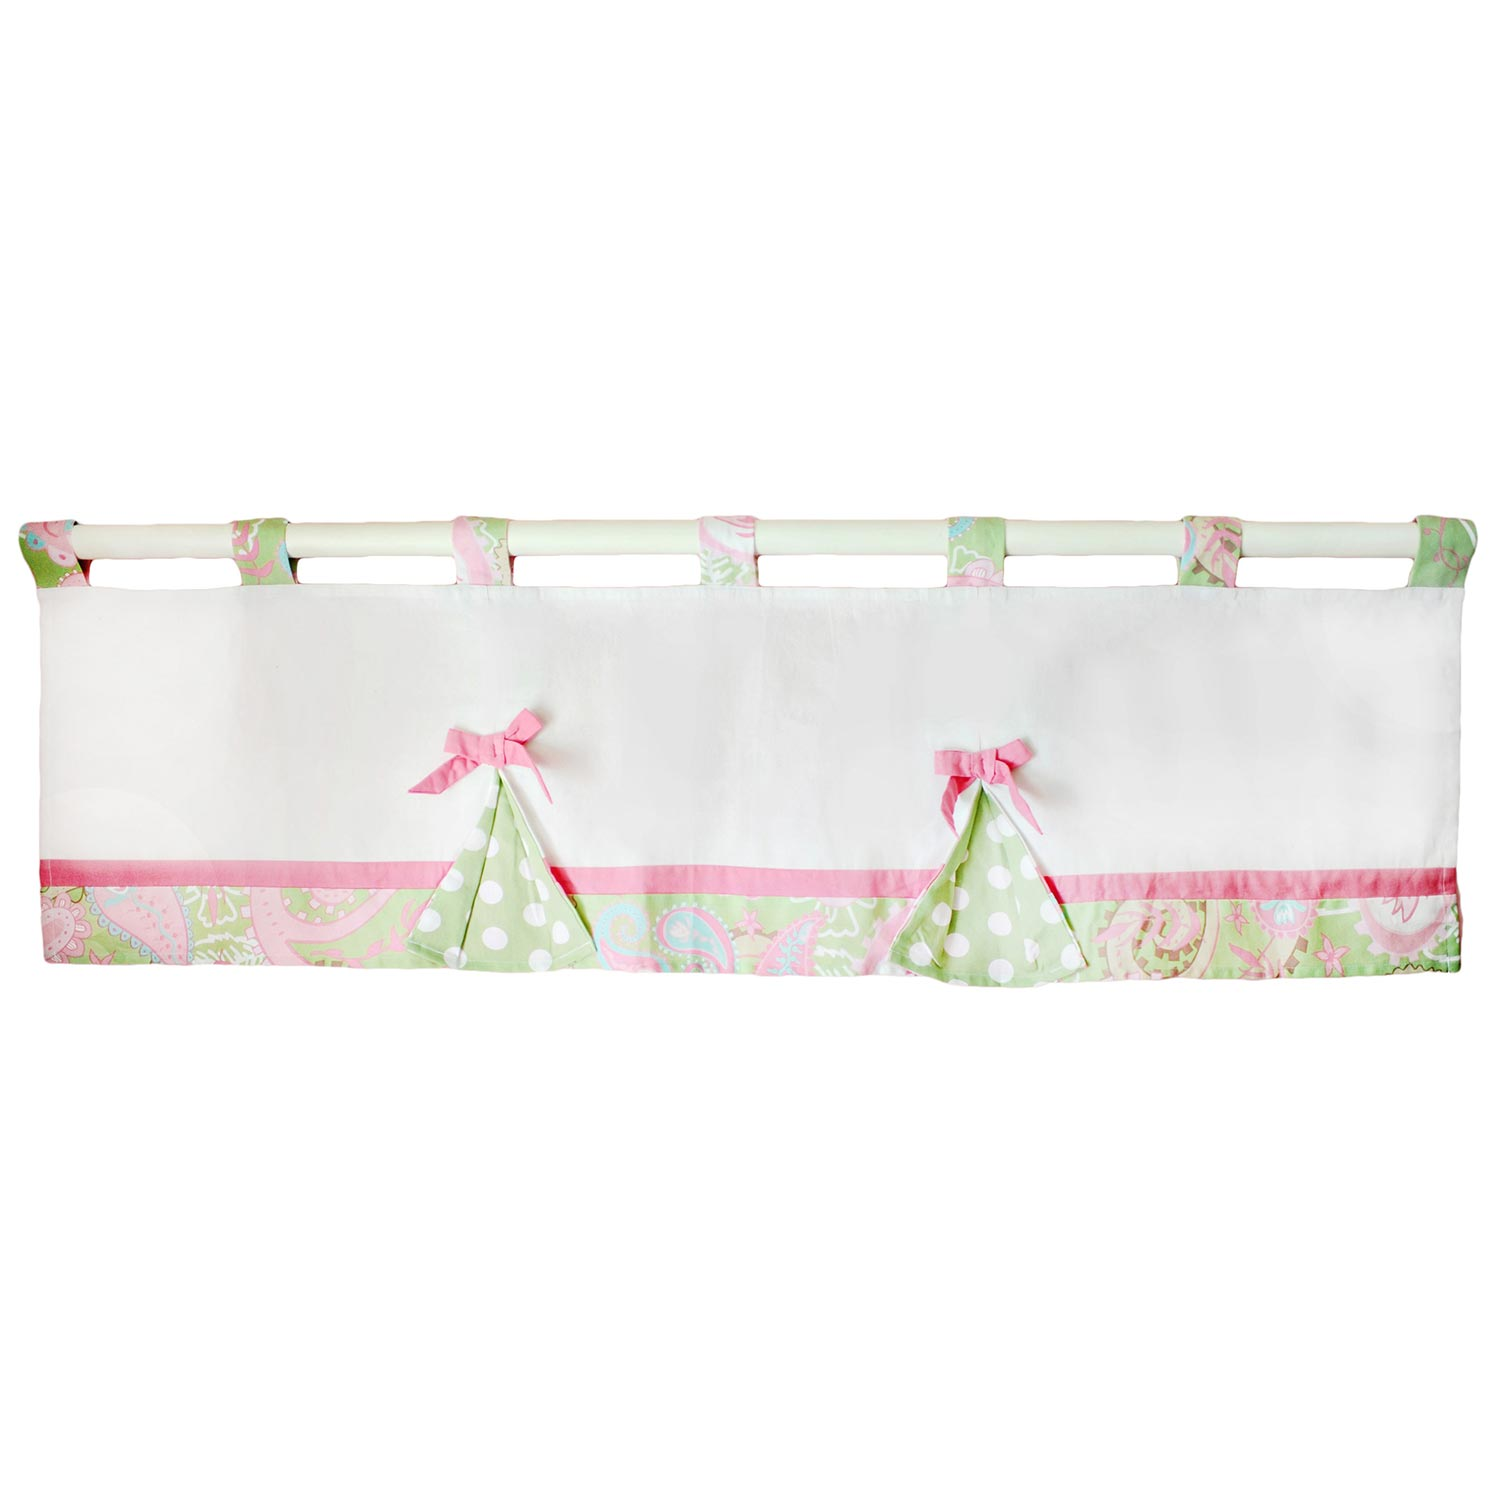 My Baby Sam Pixie Baby Curtain Valance in Pink by My Baby Sam